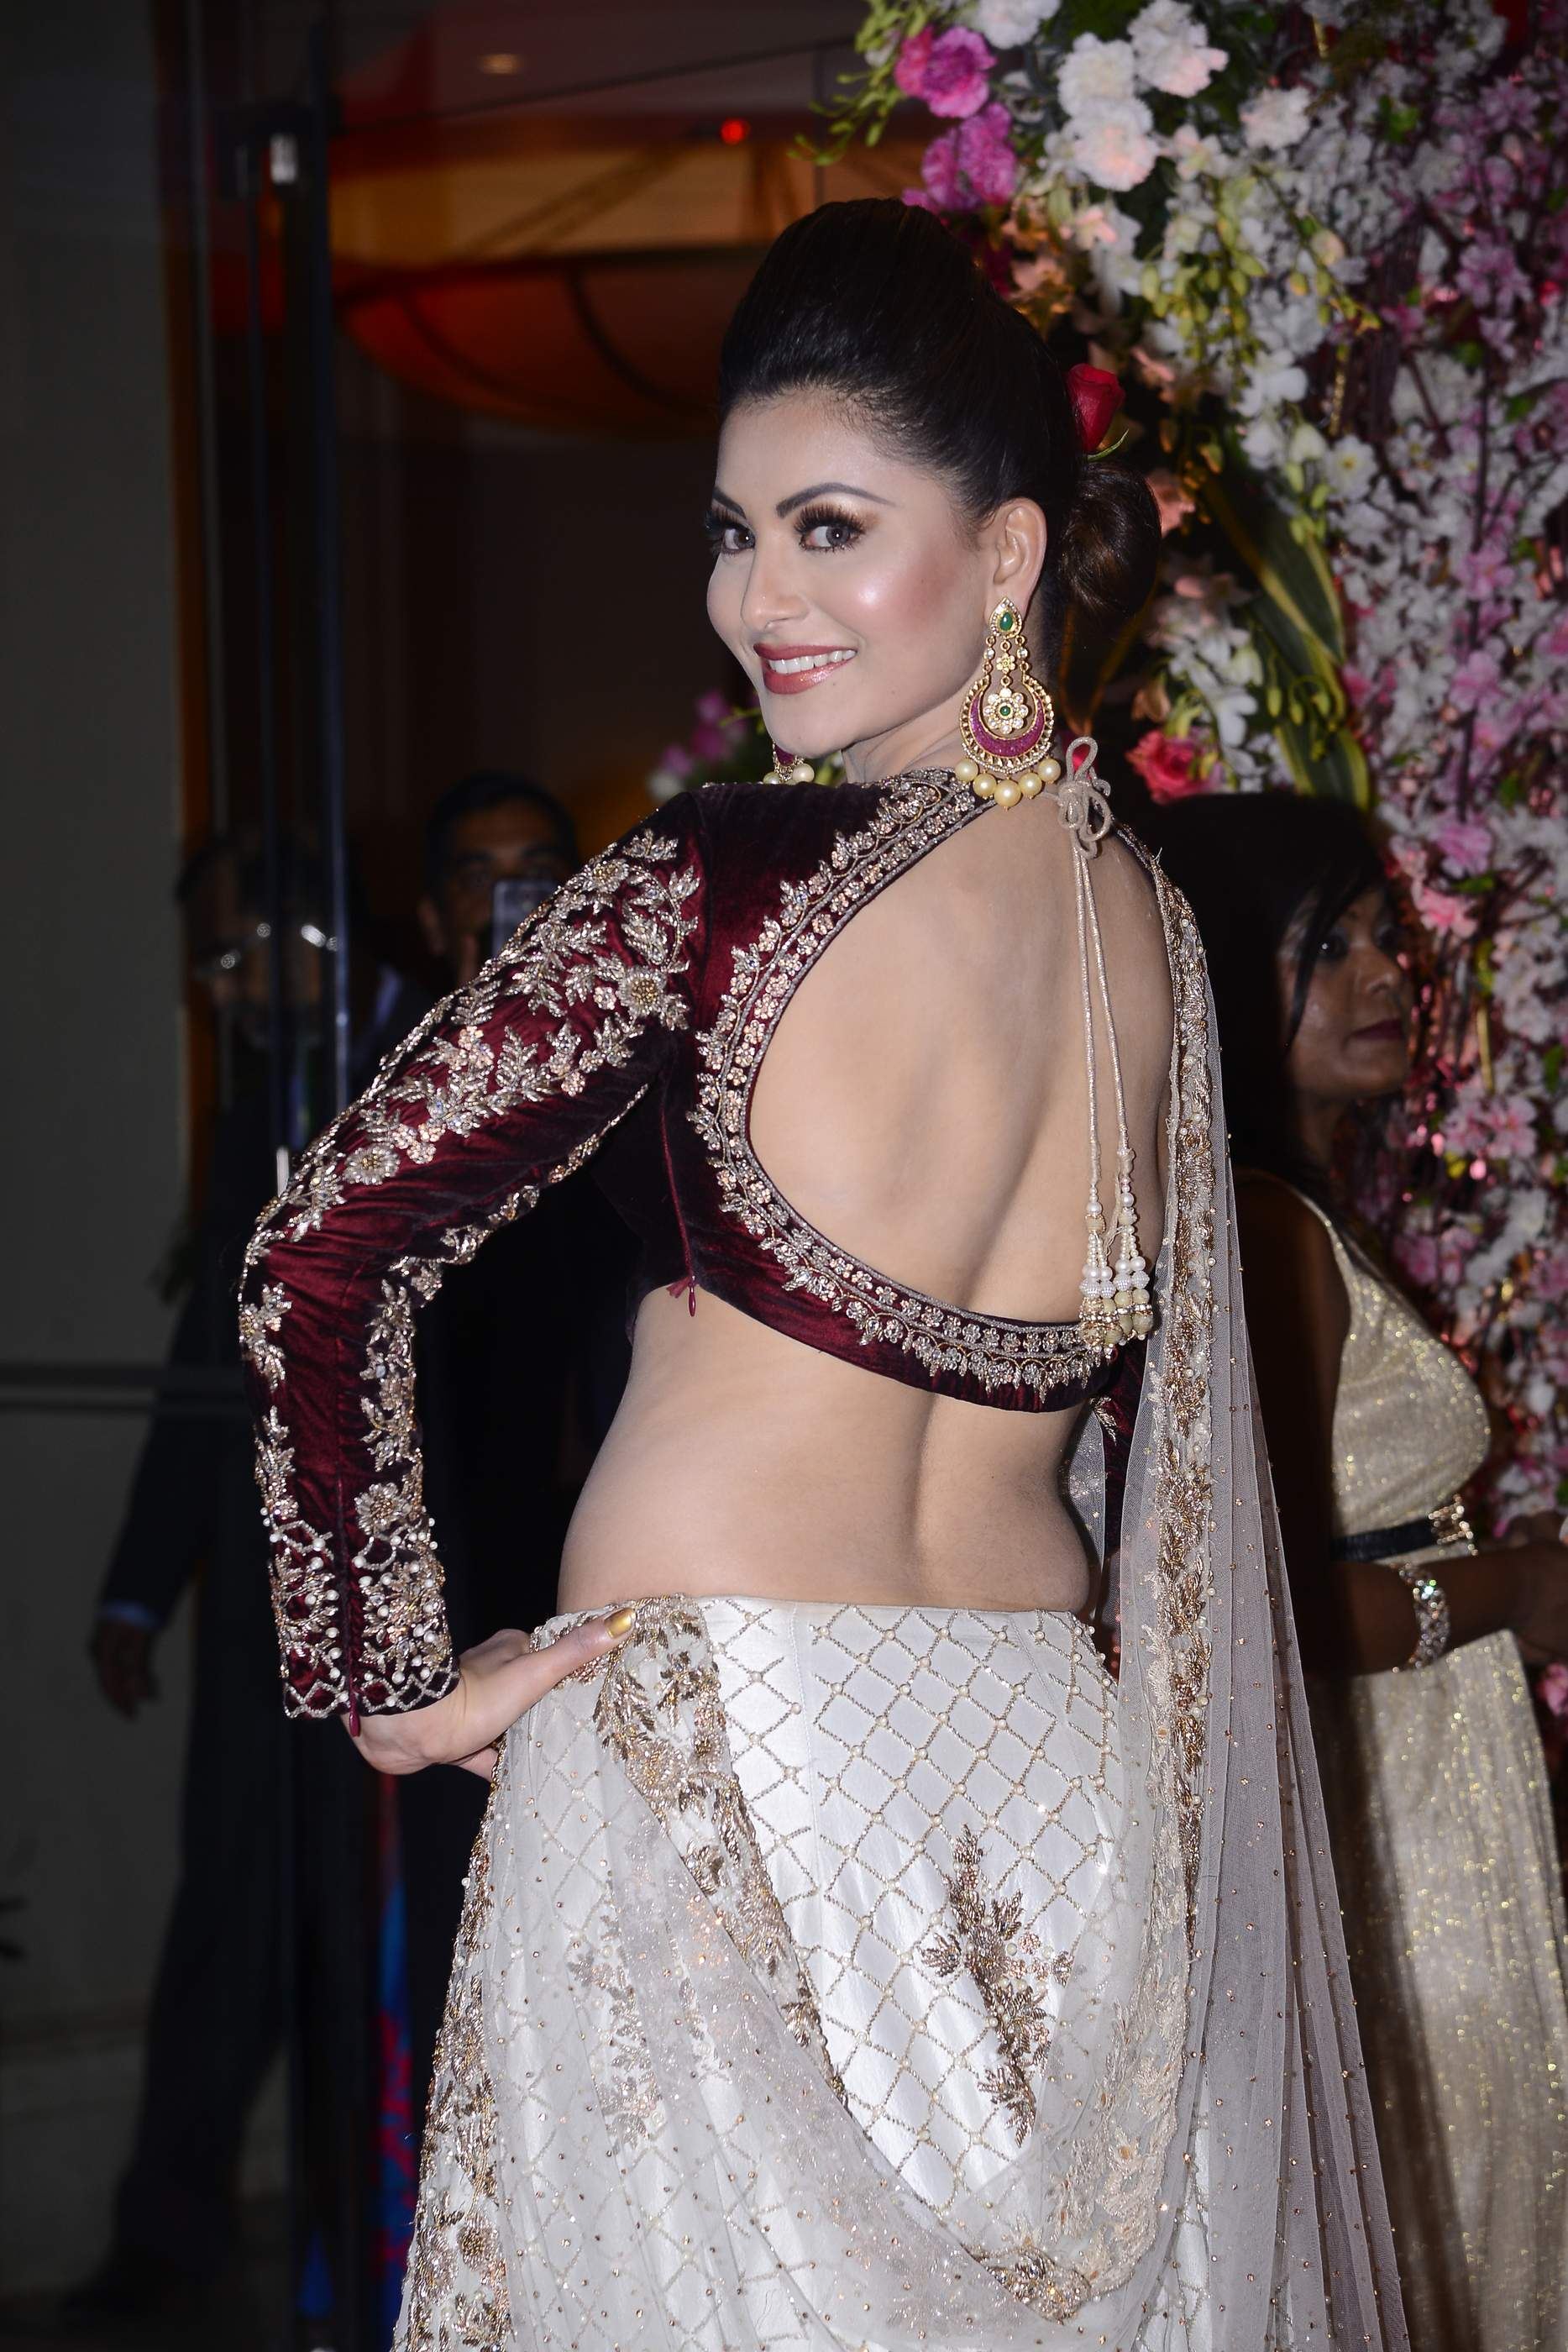 neil nitin mukesh Celebs Sizzle In Sexy Outfits | Neil Nitin Mukesh | Bollywood Neil Nitin Mukesh Wedding Reception 302 Celebs Sizzle In Sexy Outfits | Neil Nitin Mukesh Celebs Sizzle In Sexy Outfits | Neil Nitin Mukesh Neil Nitin Mukesh Wedding Reception 302